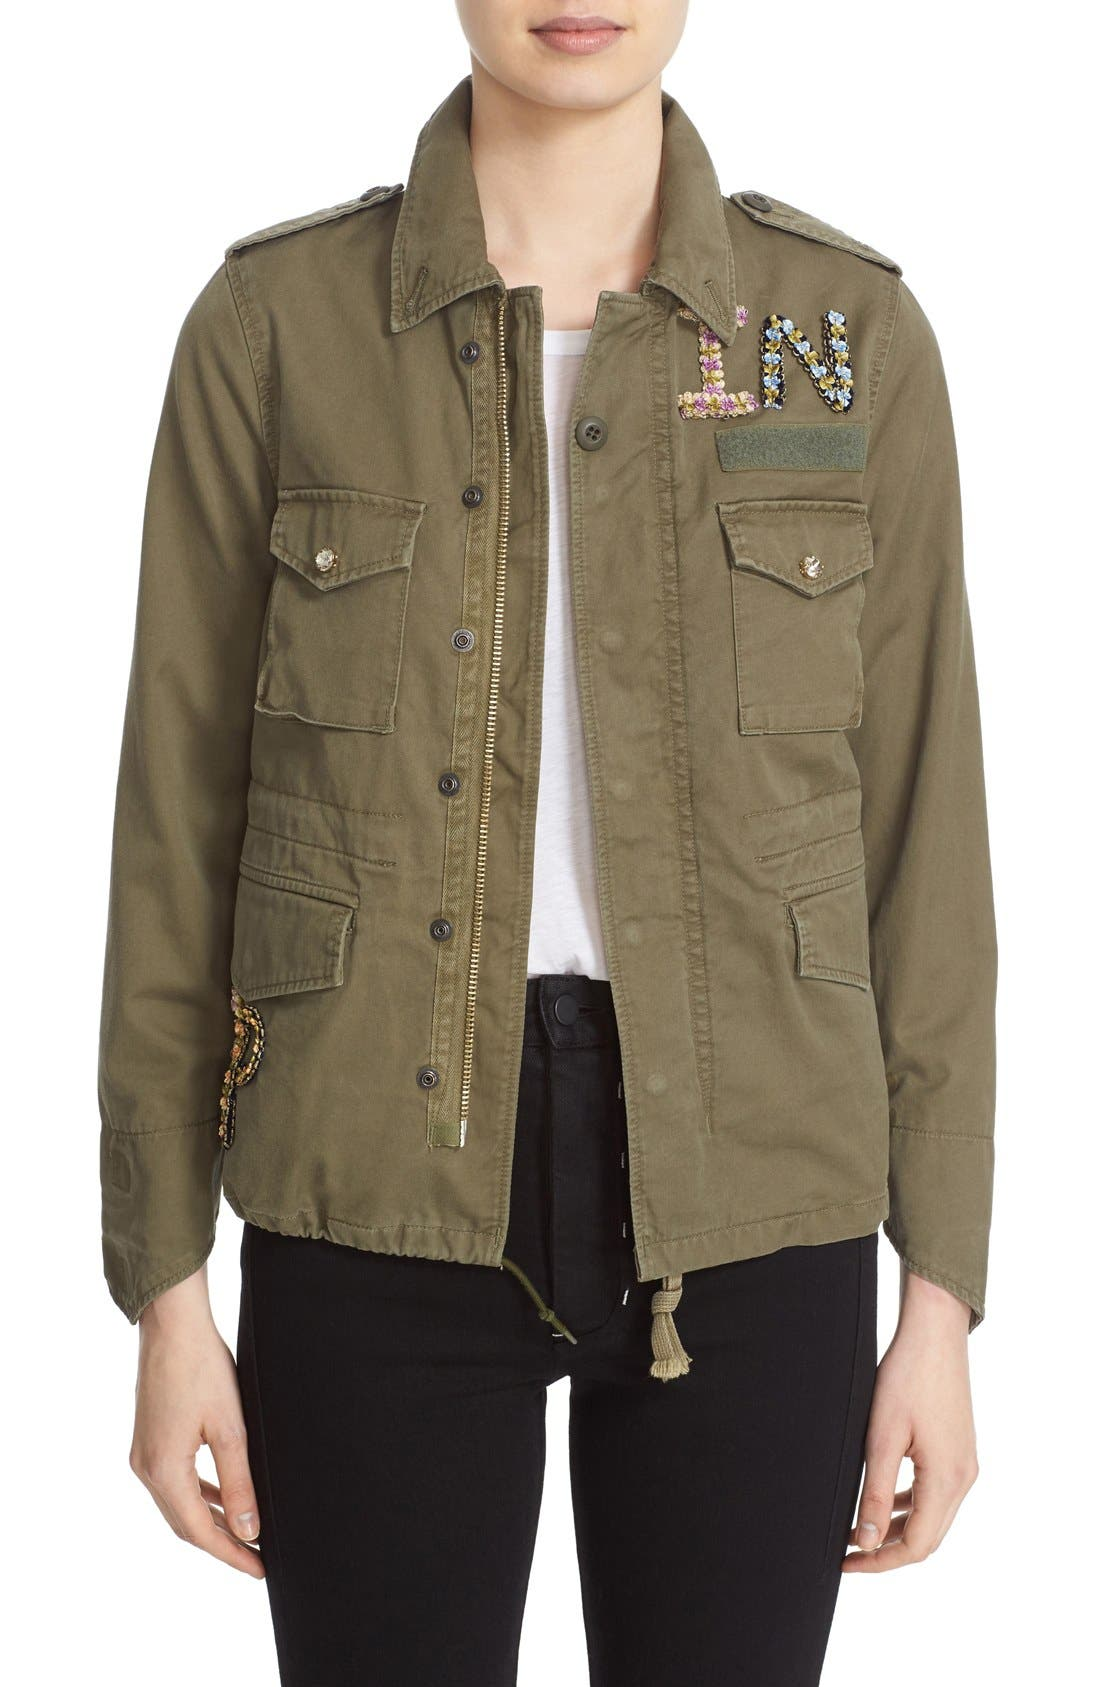 Tu es mon TRÉSOR 'The End' Embellished Military Jacket